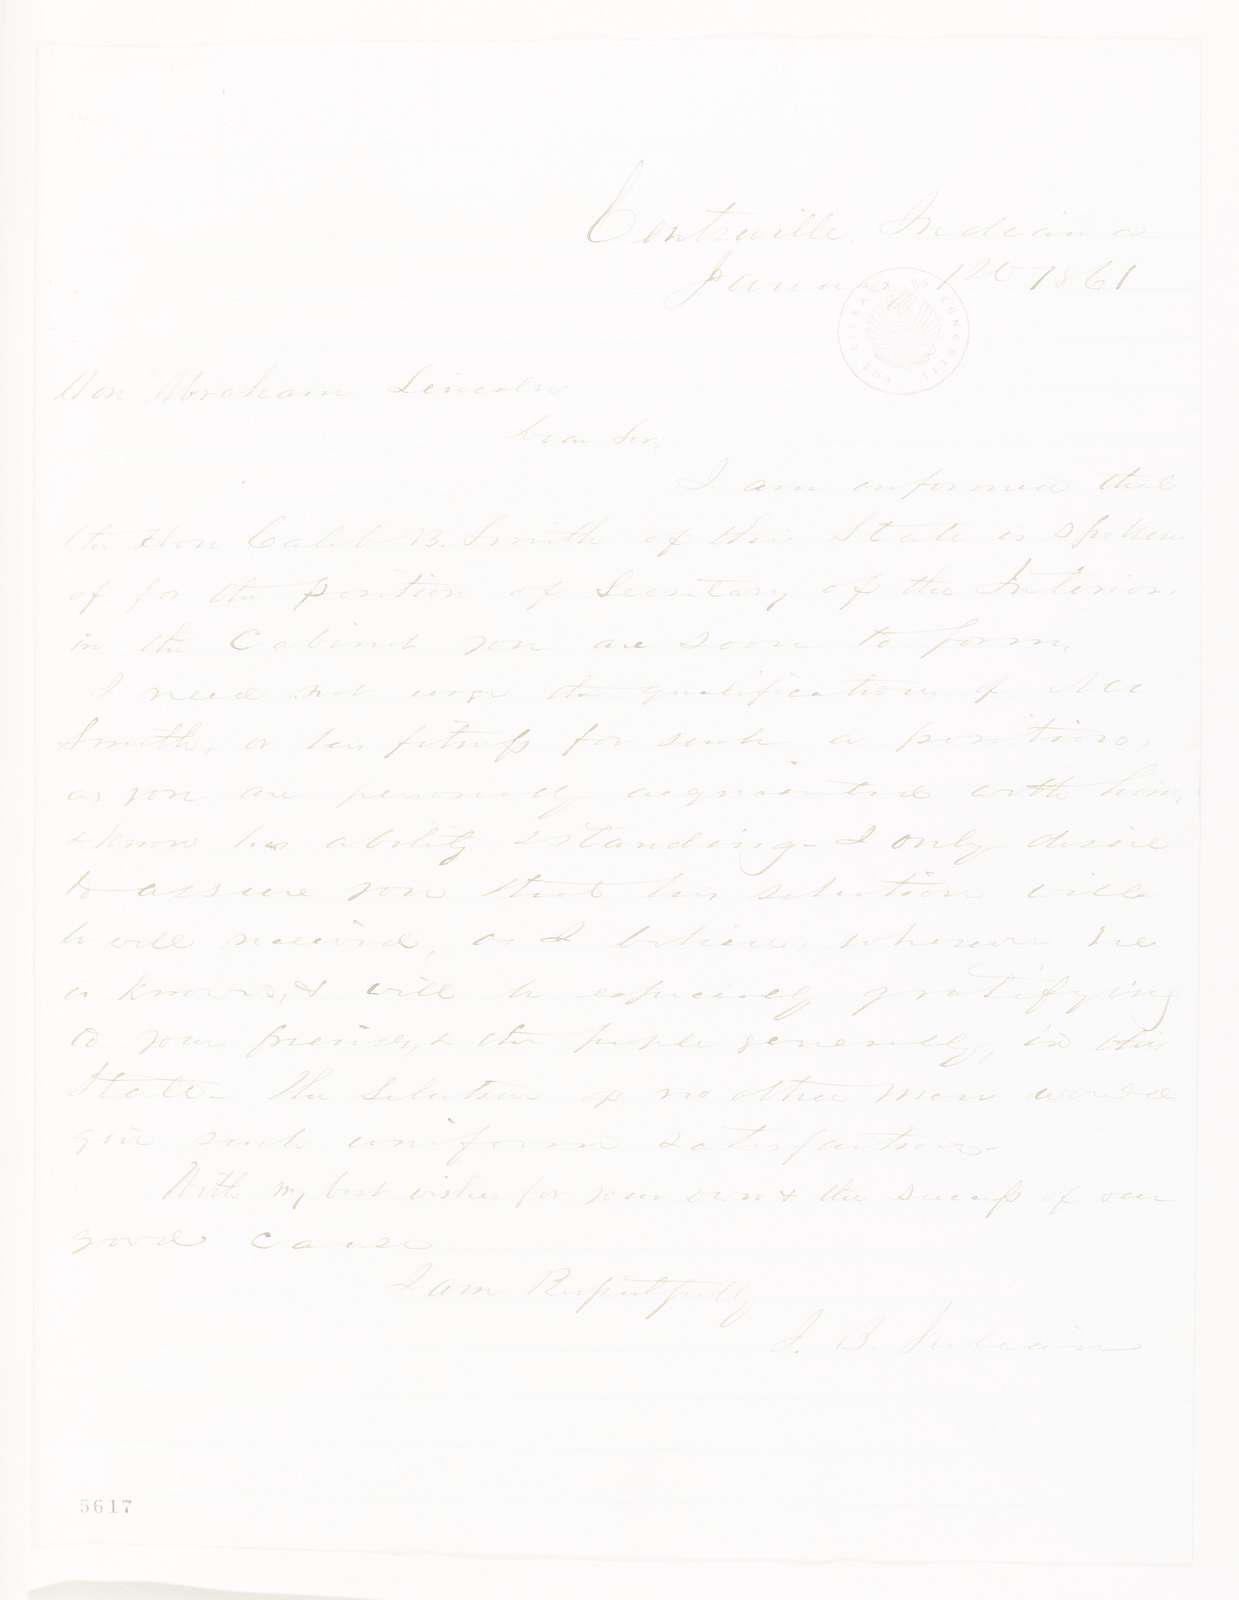 Abraham Lincoln papers: Series 1. General Correspondence. 1833-1916: J. B. Julian to Abraham Lincoln, Tuesday, January 01, 1861 (Recommendation for Caleb Smith)